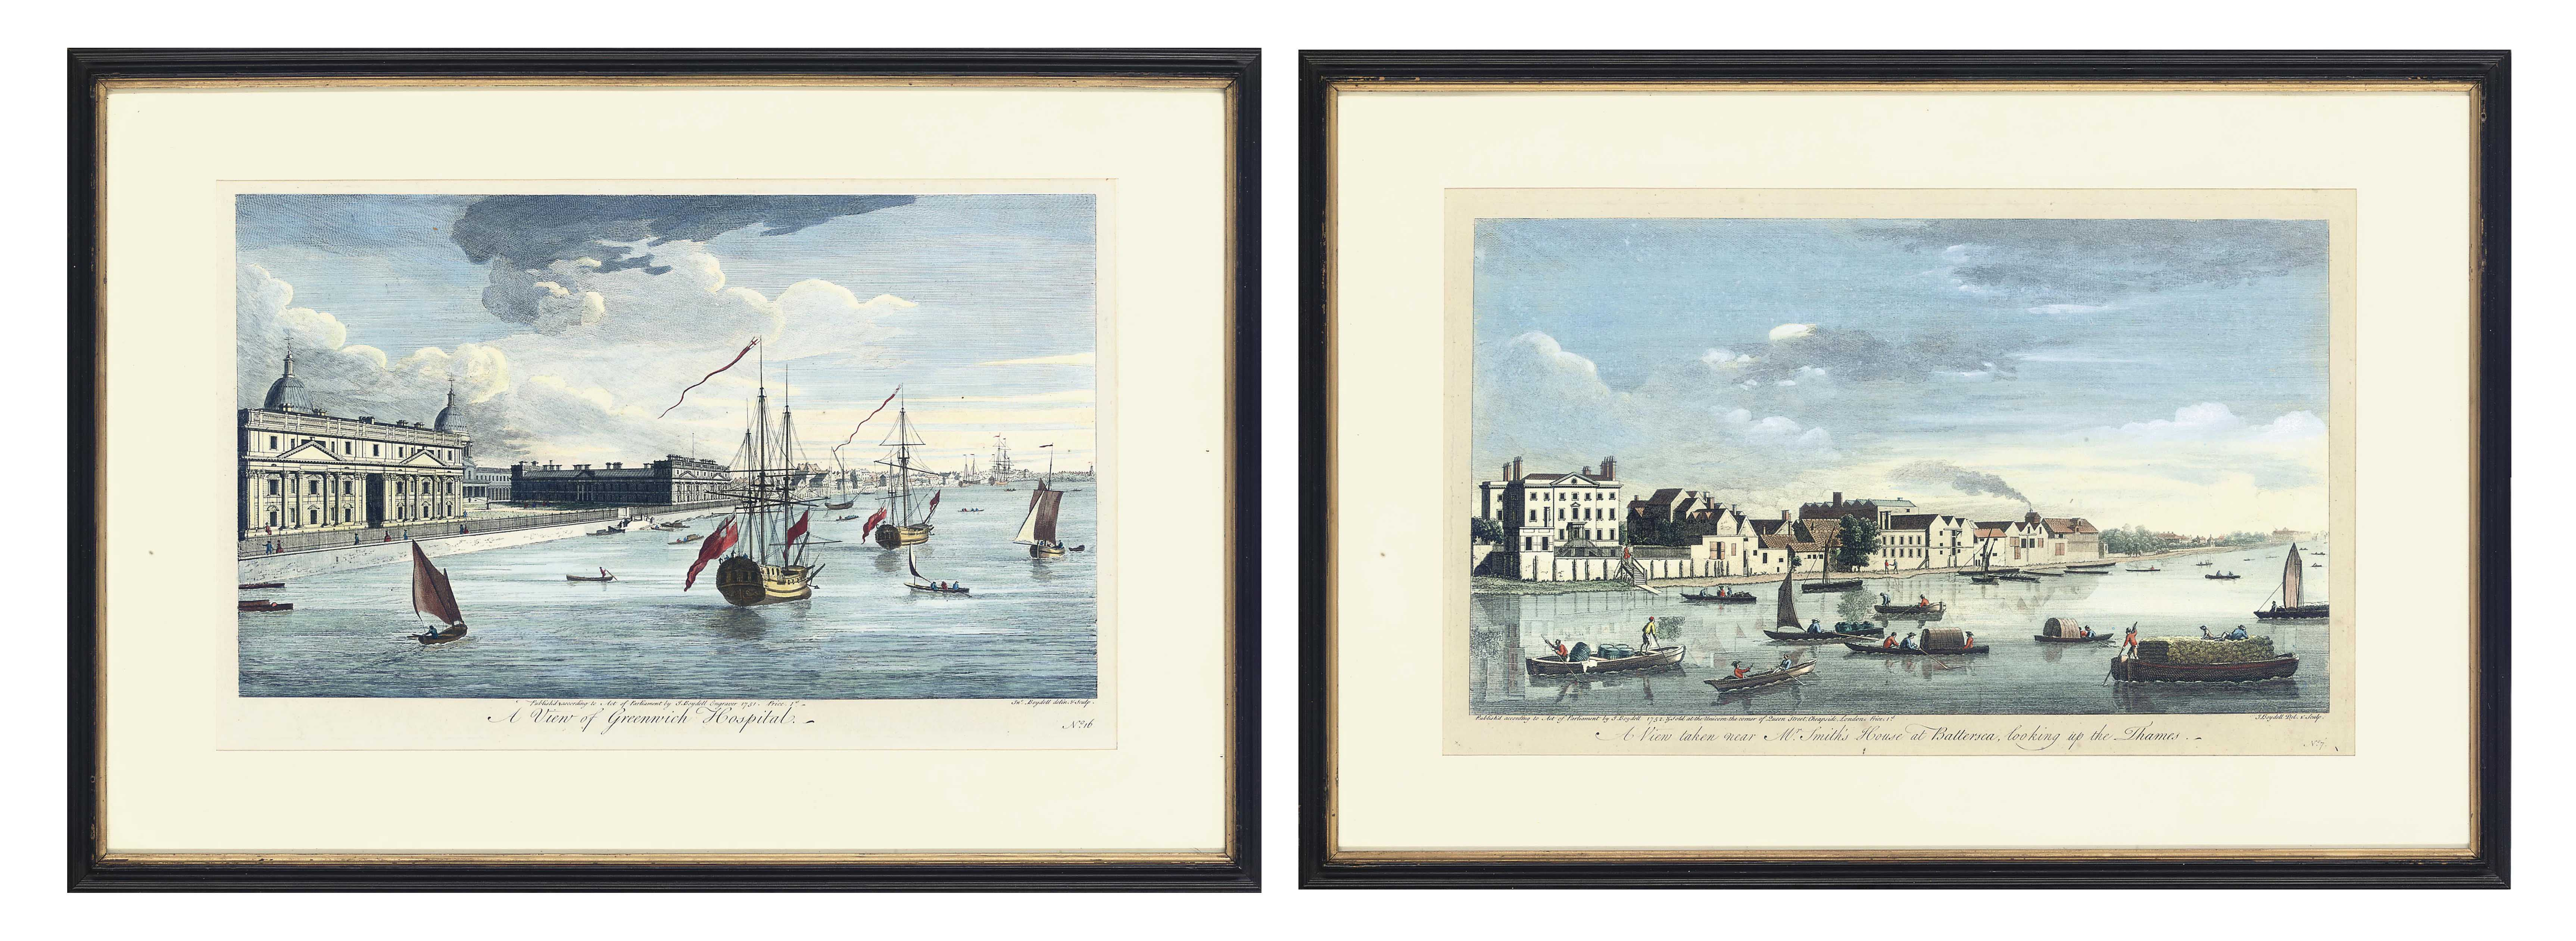 Views of London: A View of Westminster Bridge; A View taken near Mr Smith's House at Battersea, looking up the Thames; A View near Greenwich Hospital; A View of Hammersmith, looking down the Thames; A View of Erith, looking up the Thames; and A View taken near Battersea Church, looking towards Chelsea